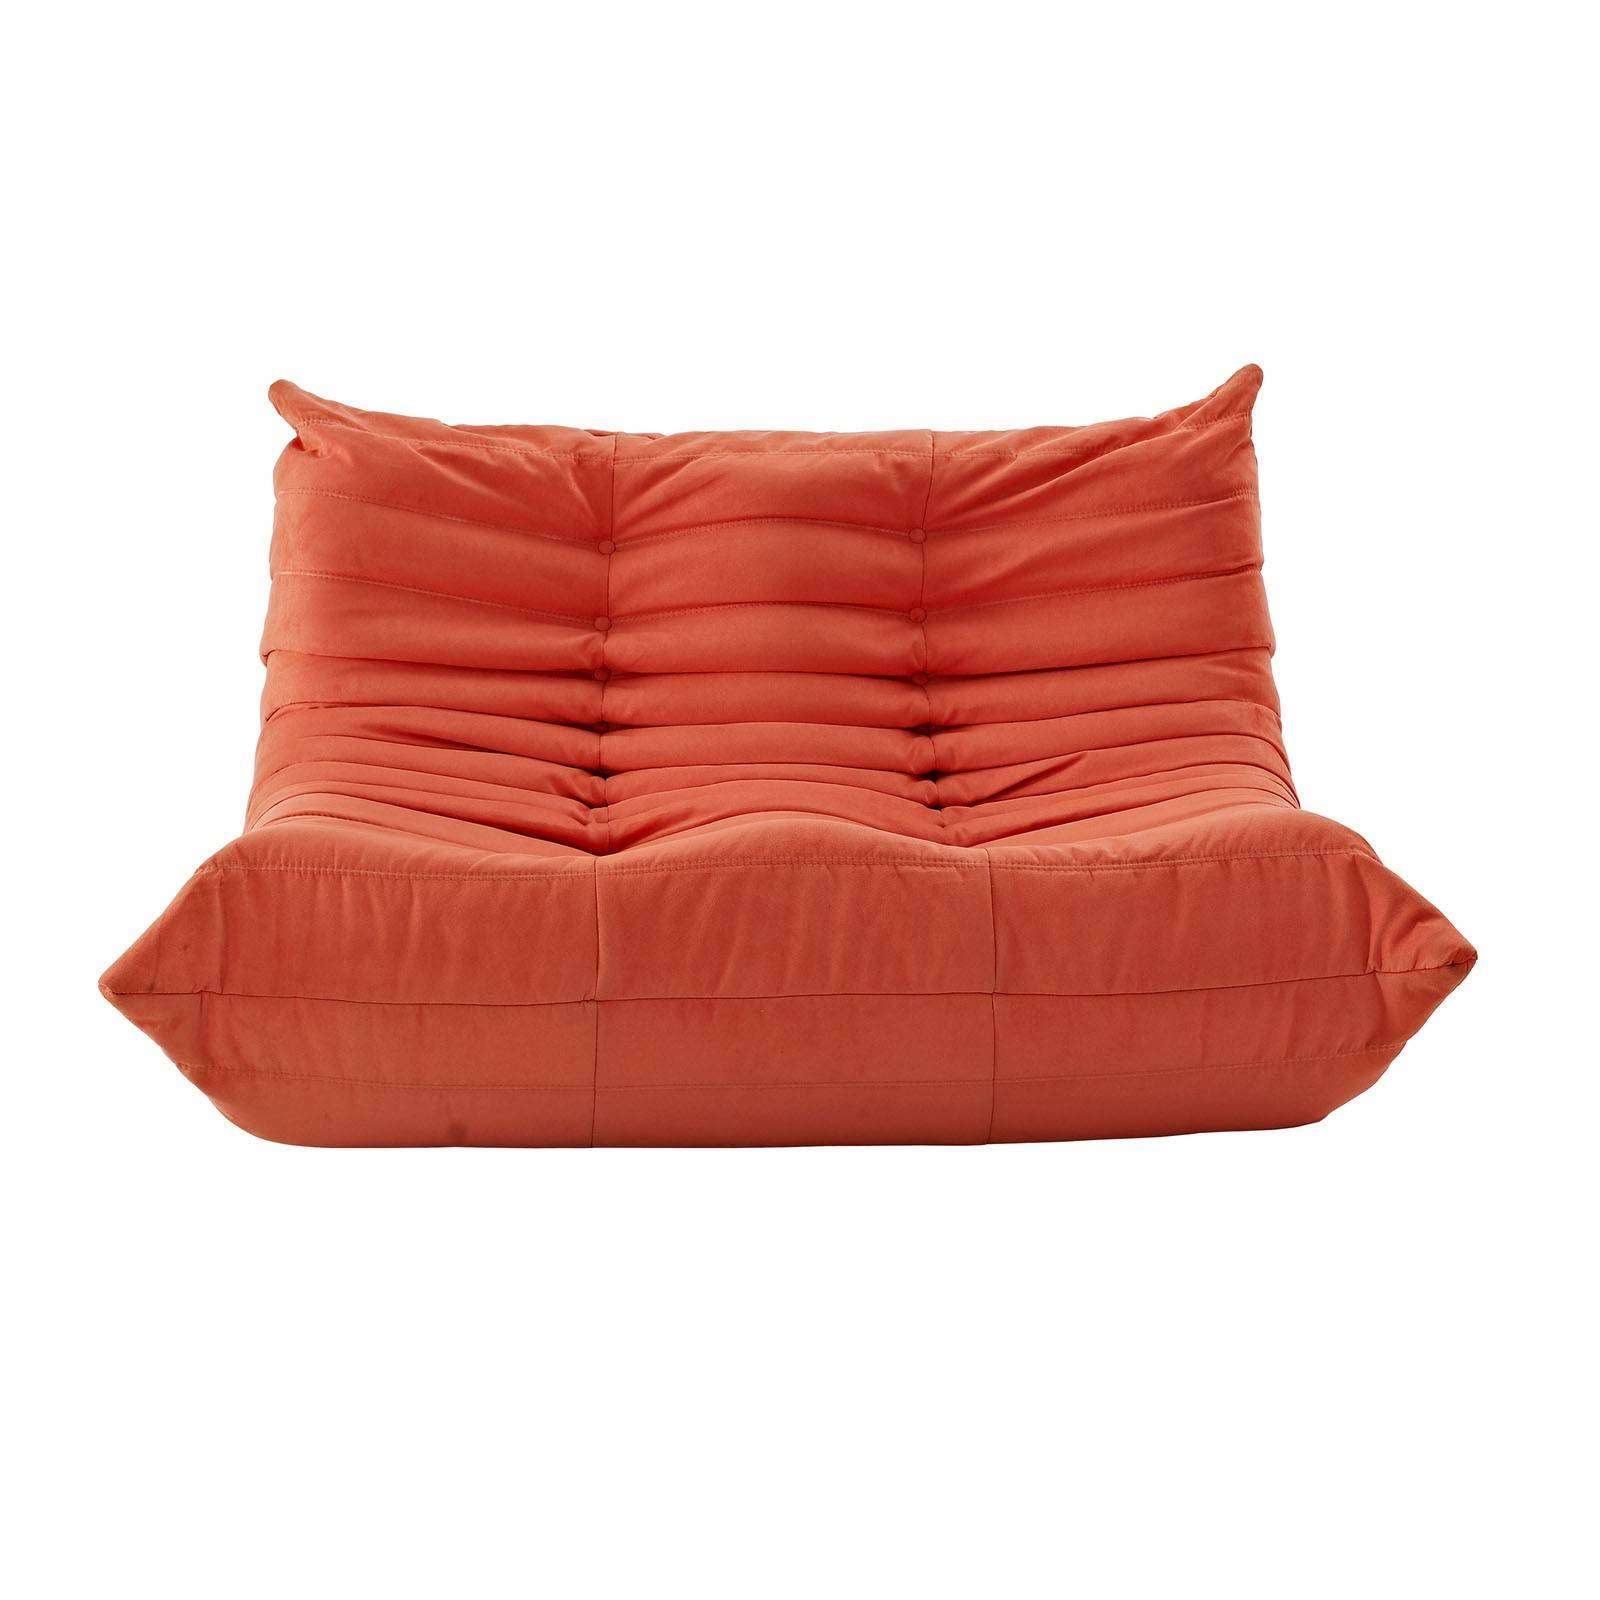 Waverunner Loveseat Sofa Couch